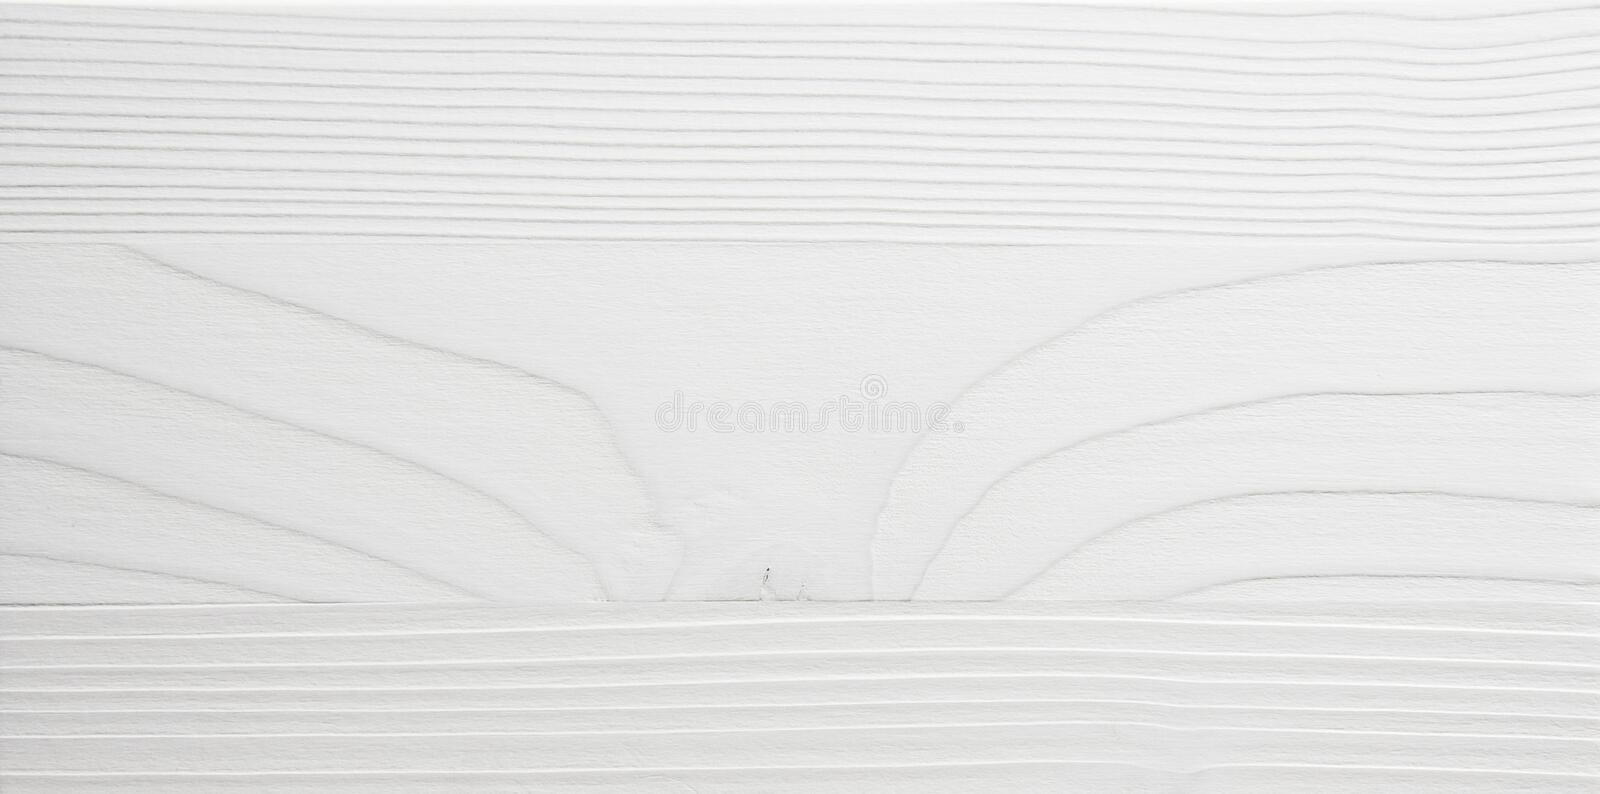 White wood texture royalty free stock photography